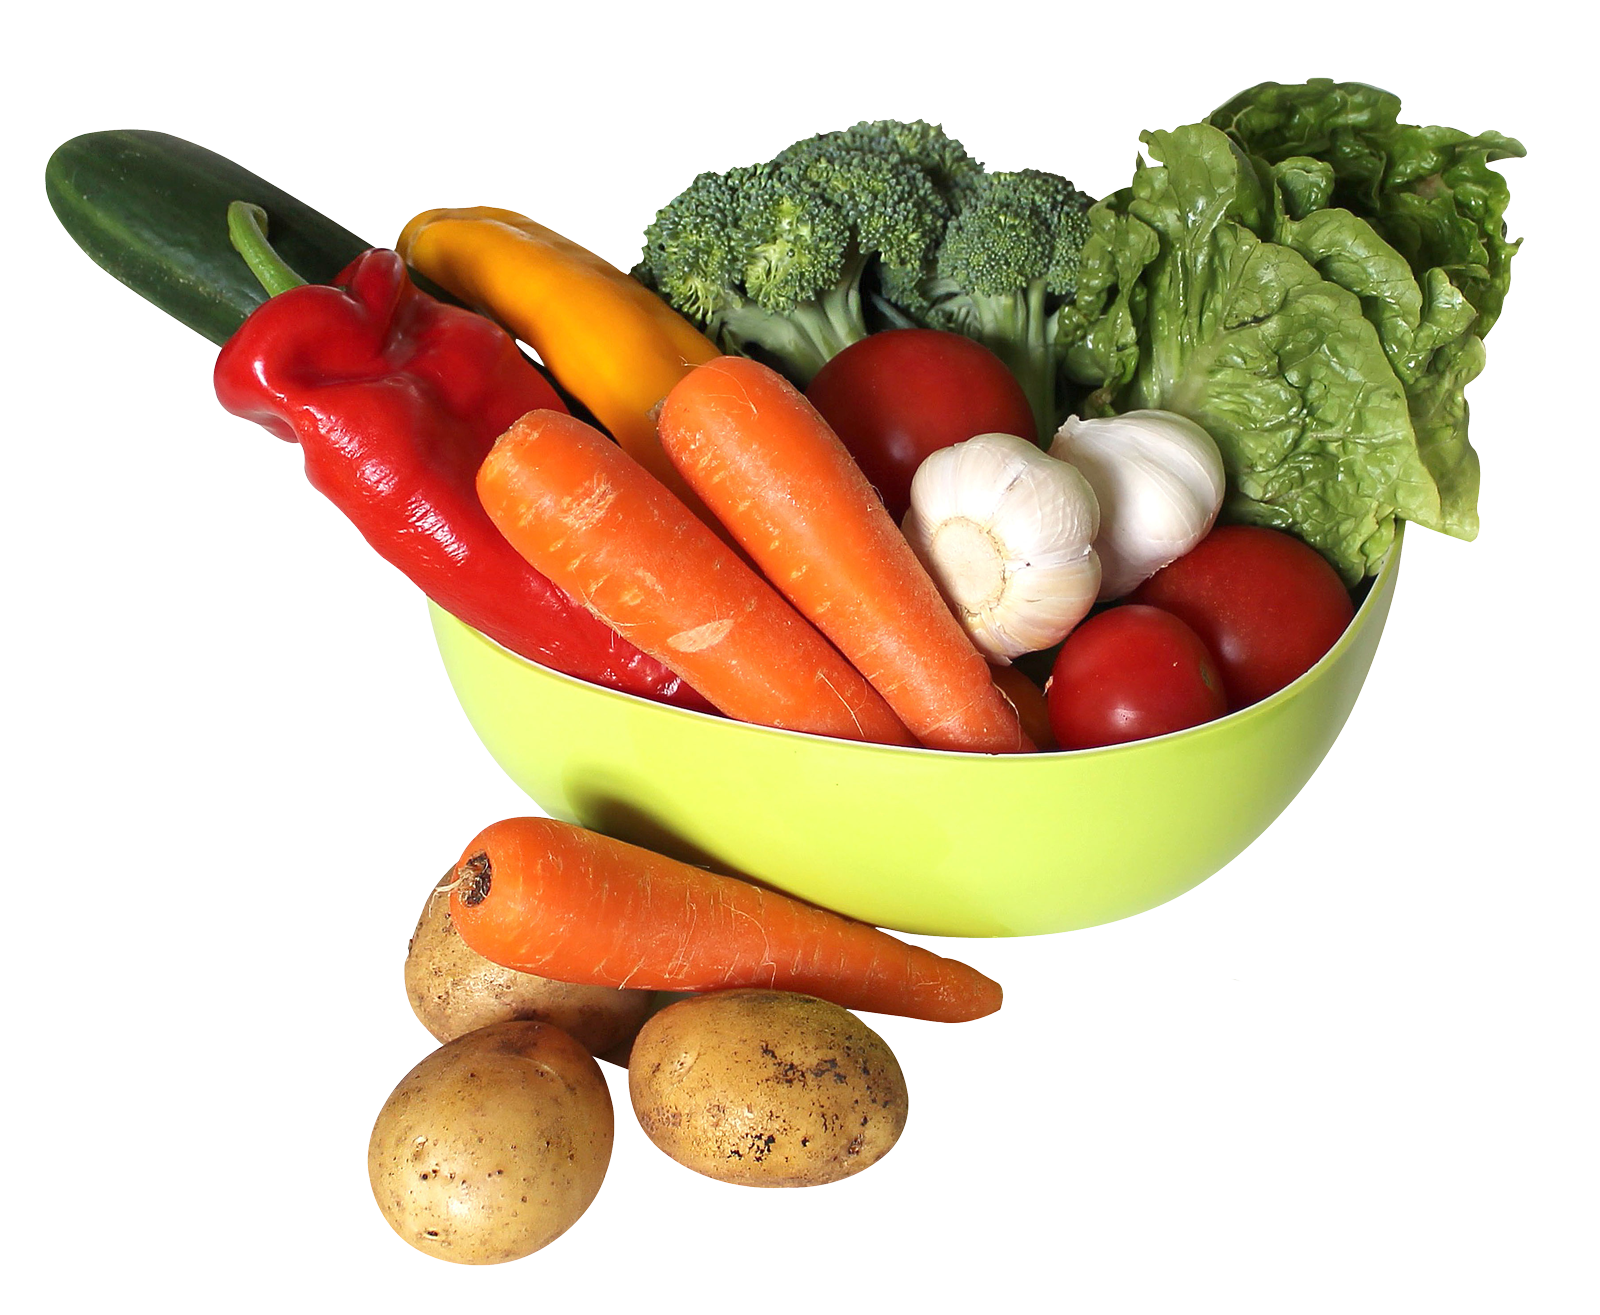 Vegetables PNG Transparent Image - Vegetable PNG